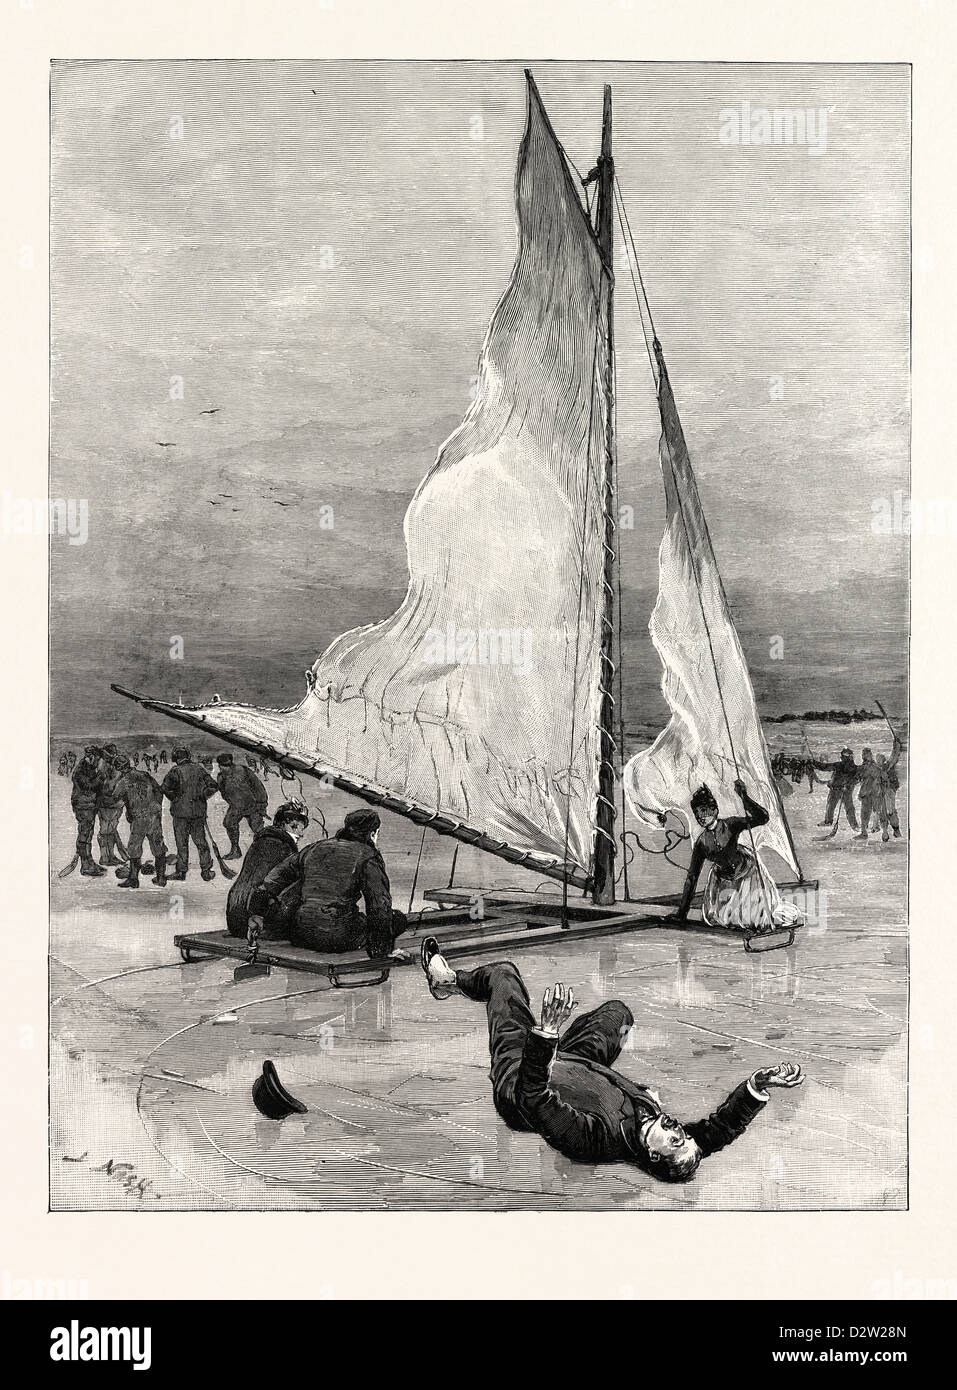 ICE YACHTING ON LOCH COBBINSHAW READY ABOUT RESULT MAN OVER BOARD - Stock Image